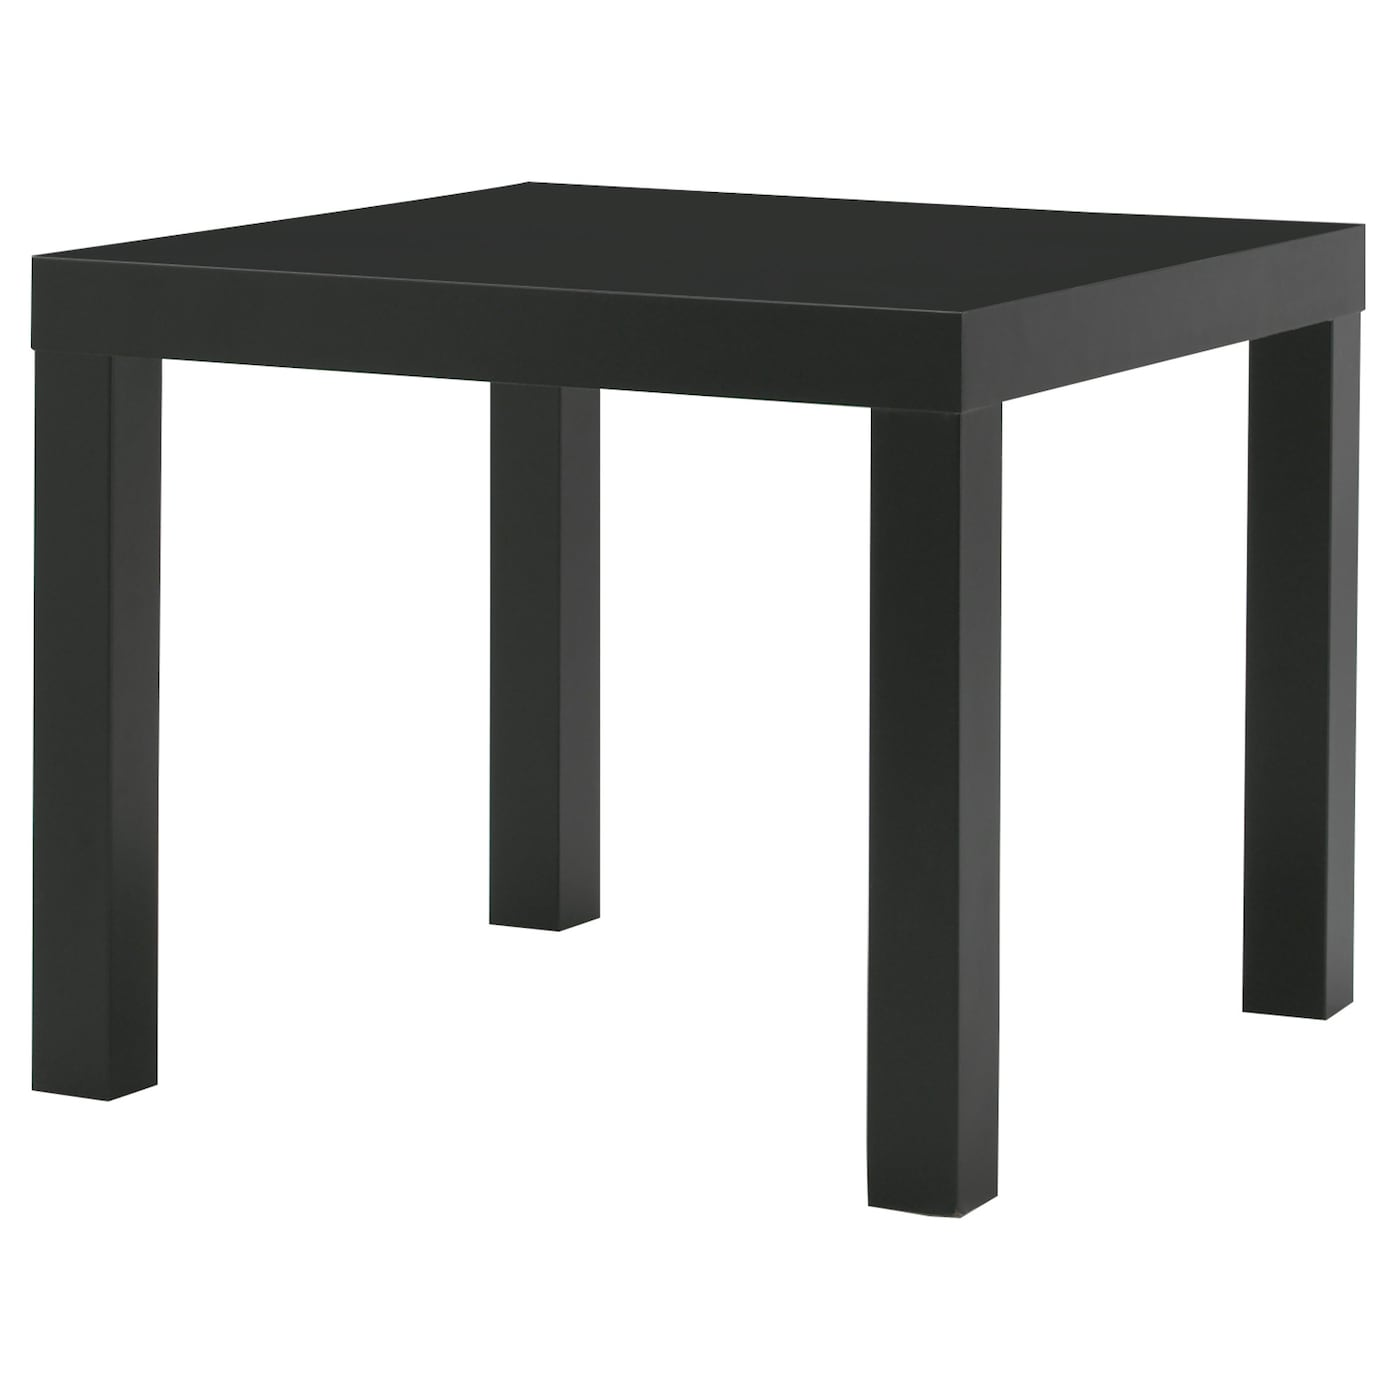 Ikea tables dining tables - Petite table cuisine ikea ...